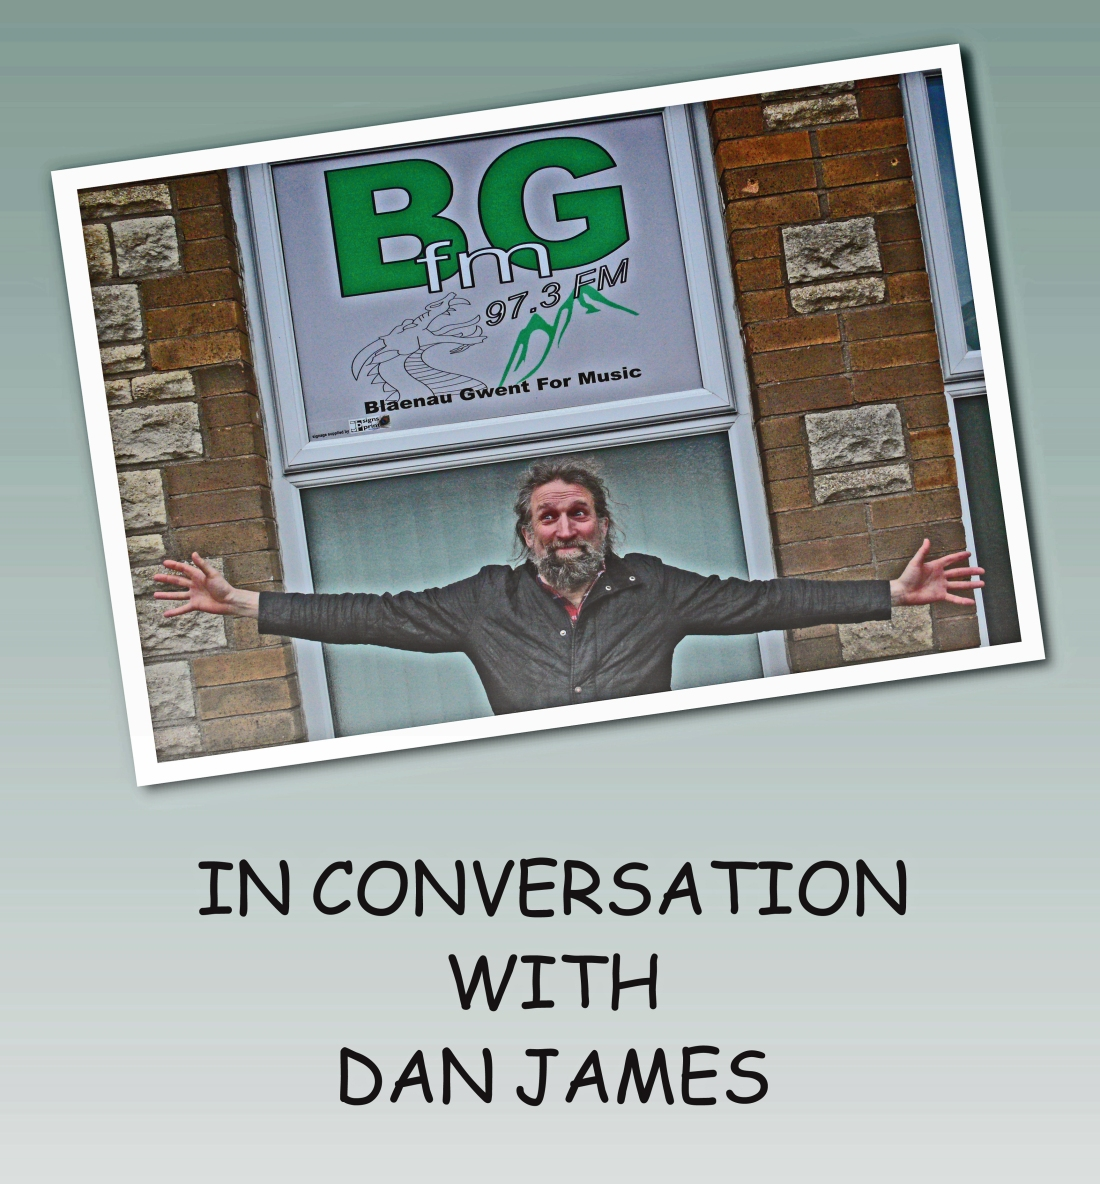 IN CONVERSATION WITH DAN JAMES - PODACST PAGE